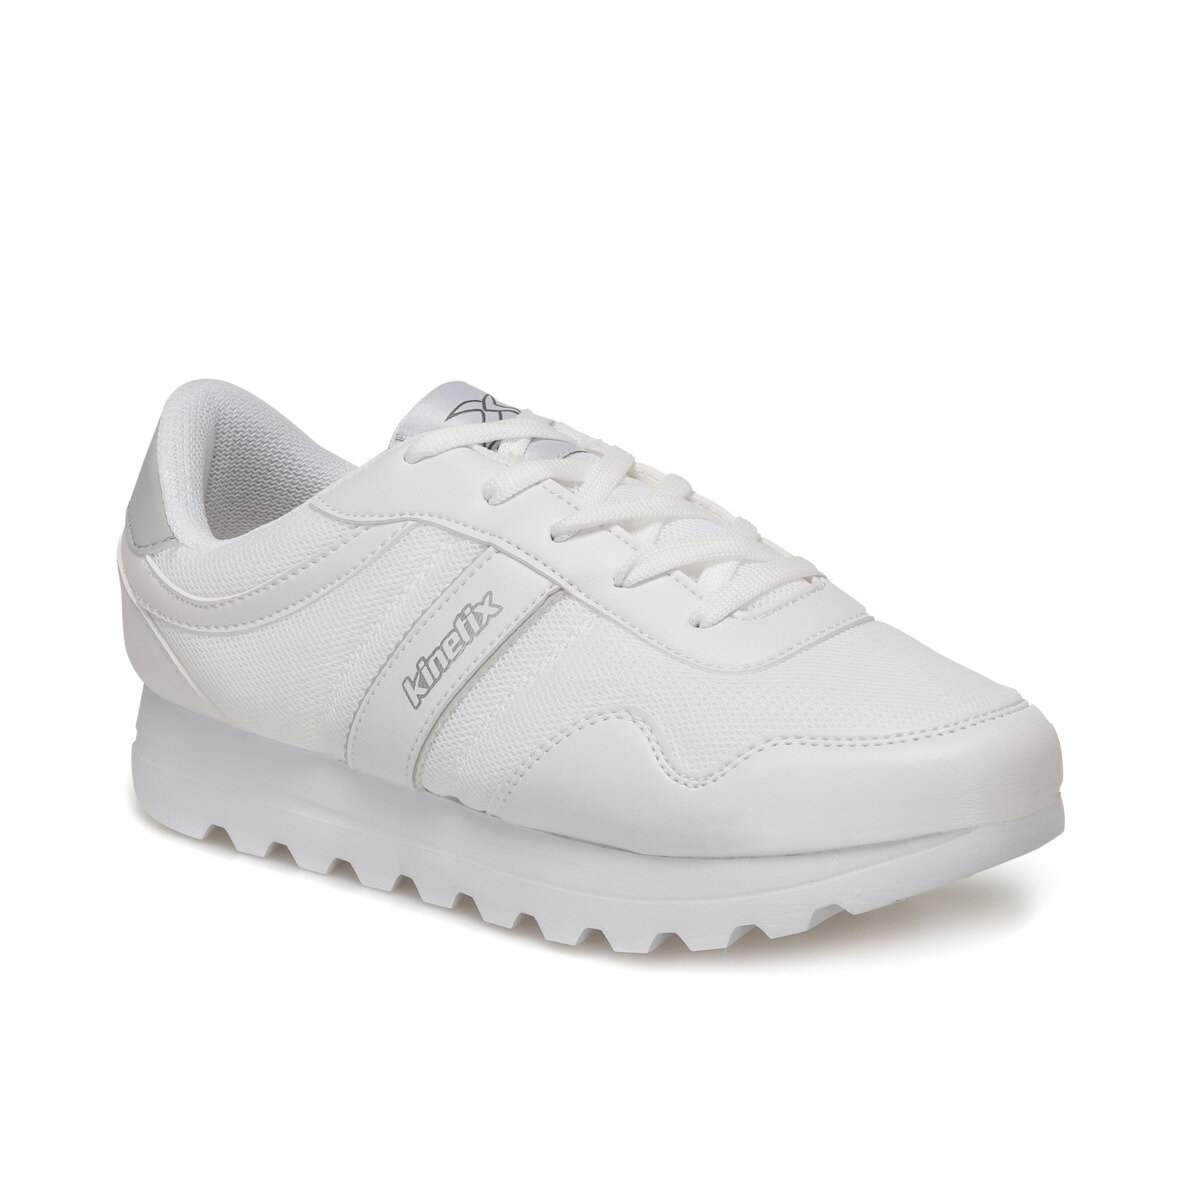 FLO GIAN TX W White Women 'S Sneaker Shoes KINETIX